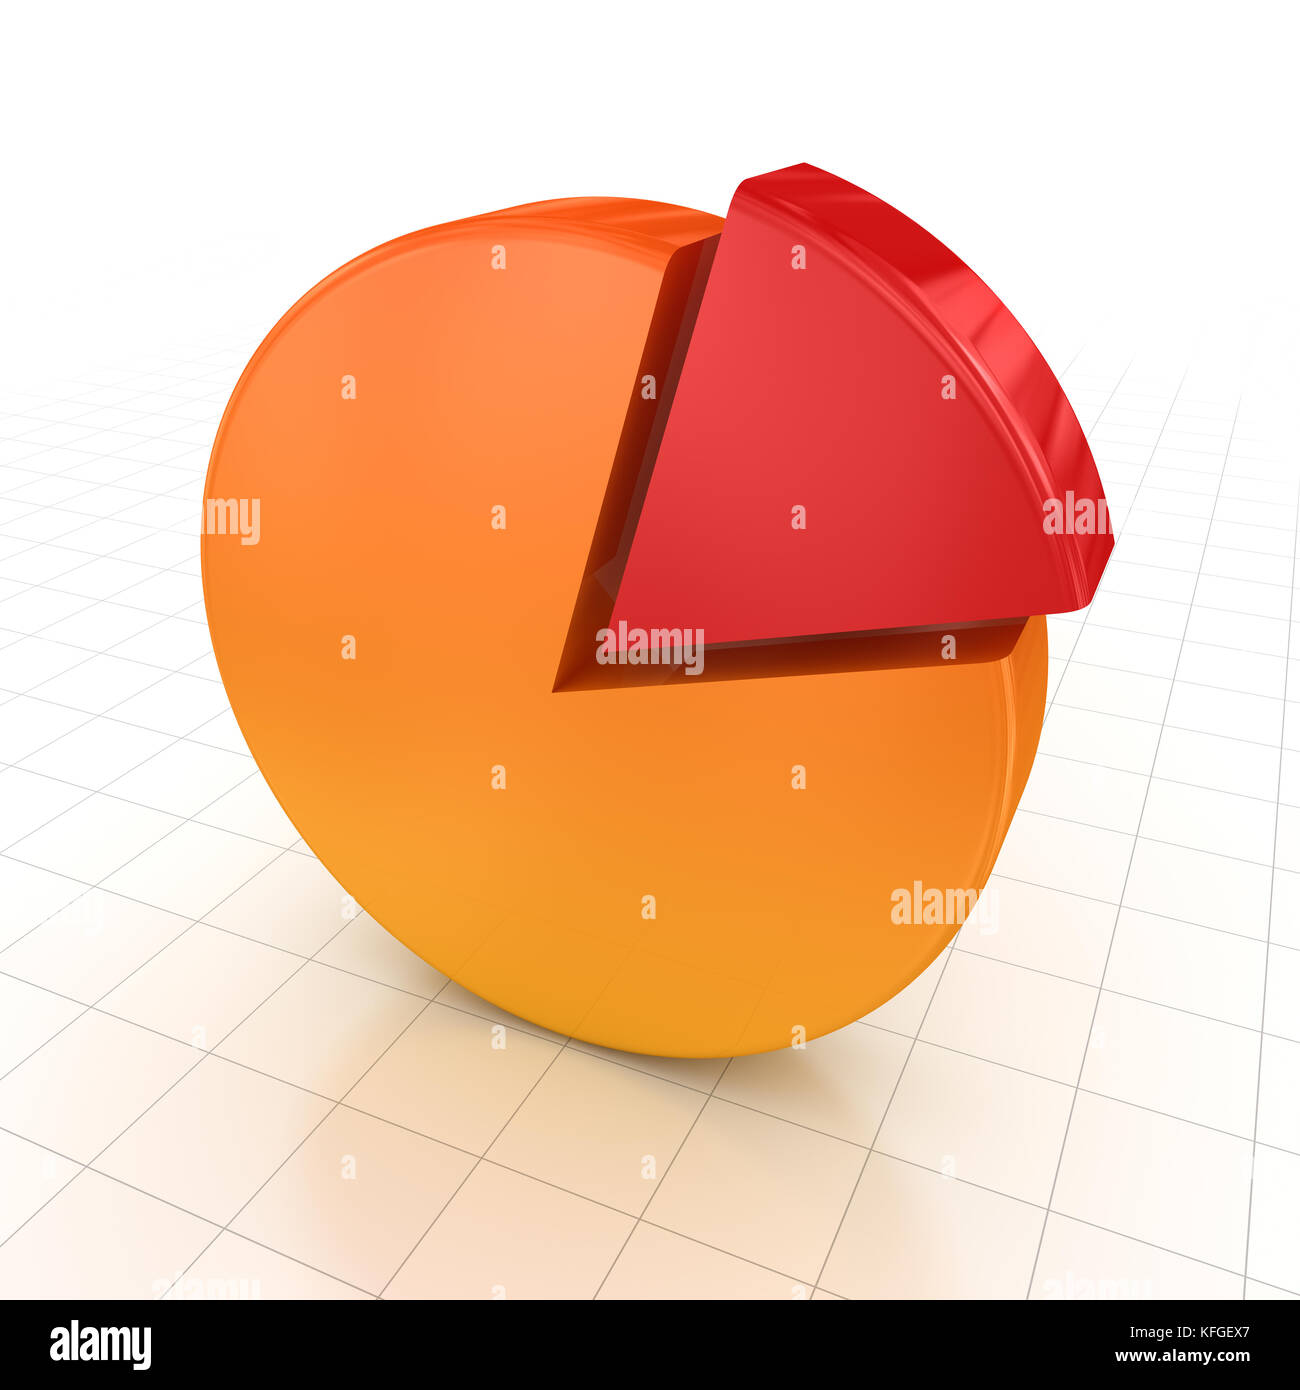 Pie chart money stock photos pie chart money stock images alamy pie chart computer generated image 3d render stock image nvjuhfo Images